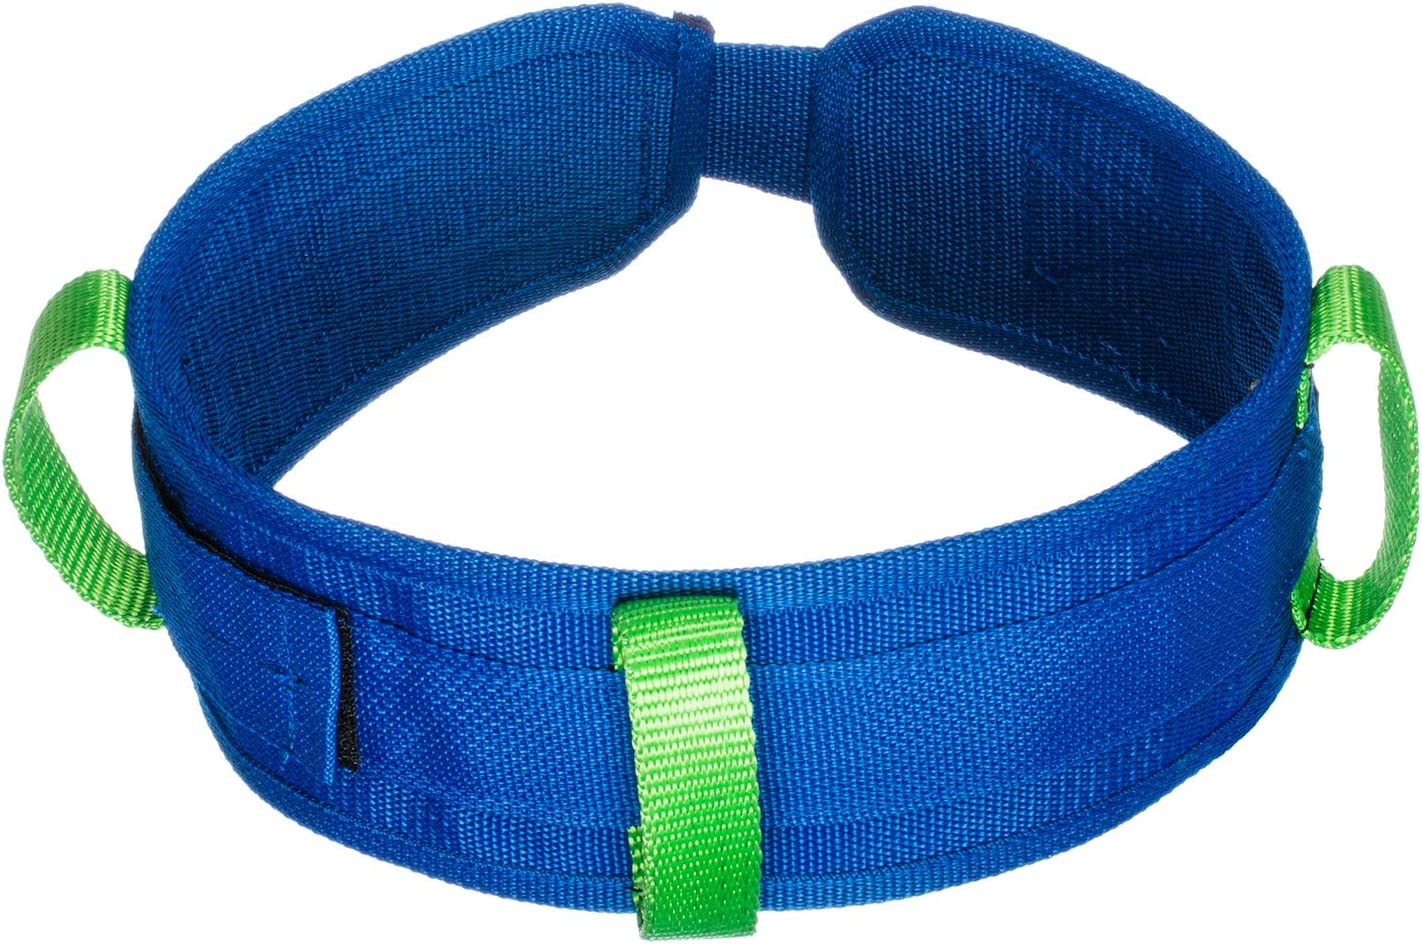 COWCOW Gait Belt with 3 Handles Metal Industry No. 1 Loop for Physical Ranking TOP9 and The